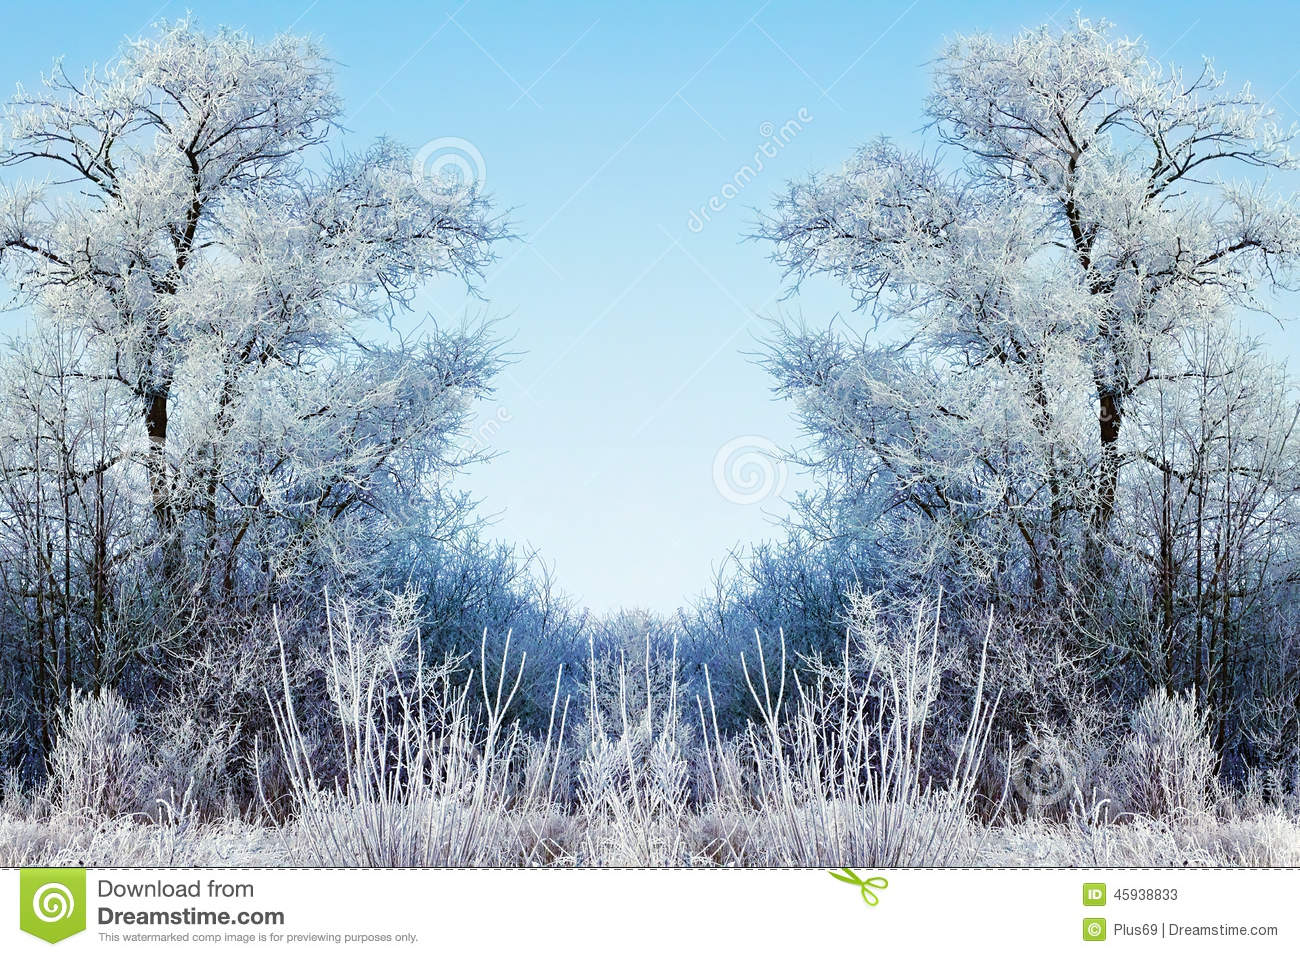 Nature Images 2mb: Winter Background With Icy Branches In The Foreground